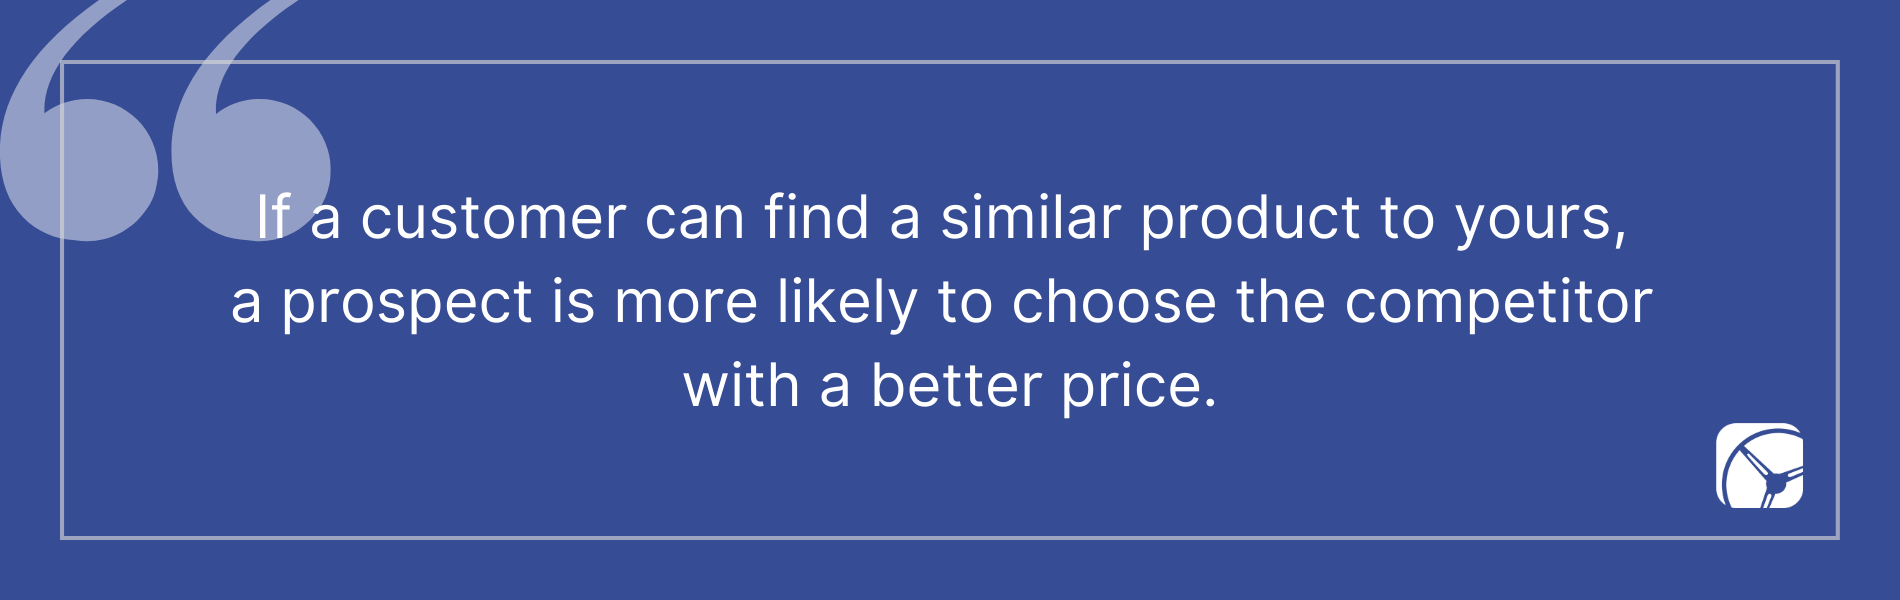 If a customer can find a similar product to yours,  a prospect is more likely to choose the competitor  with a better price.